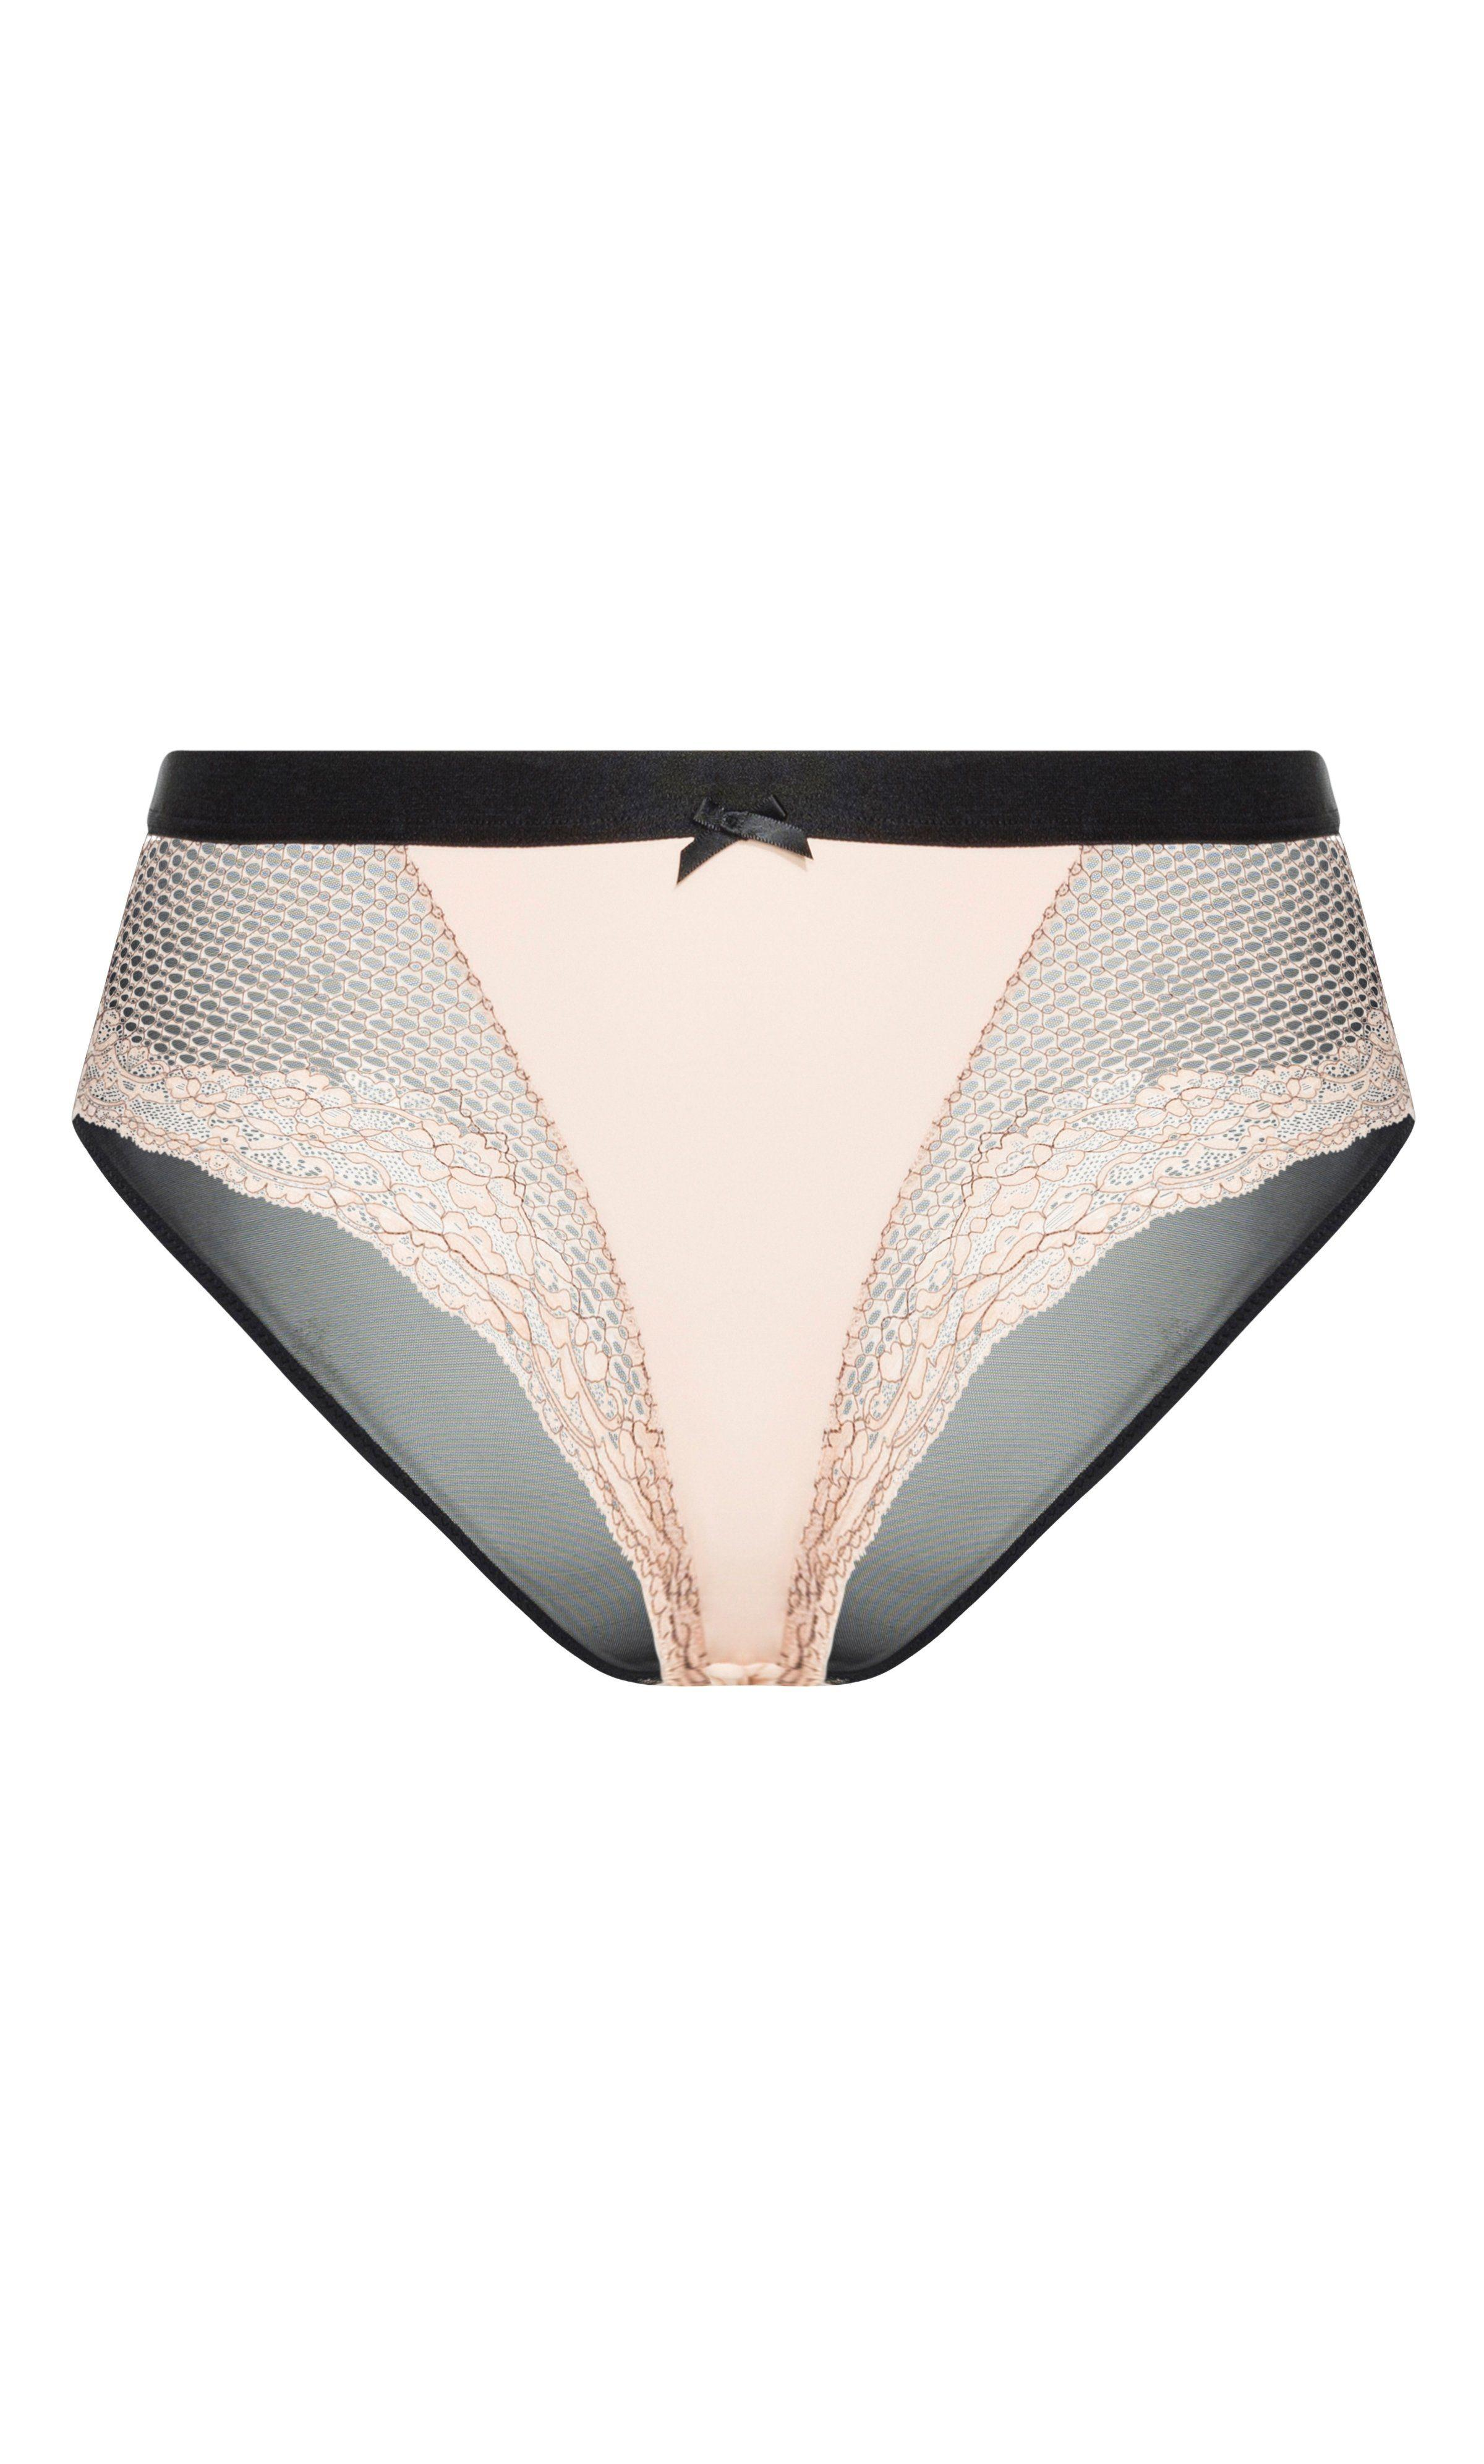 Aubade La Rochelle Lyst City Chic Nina Shorty